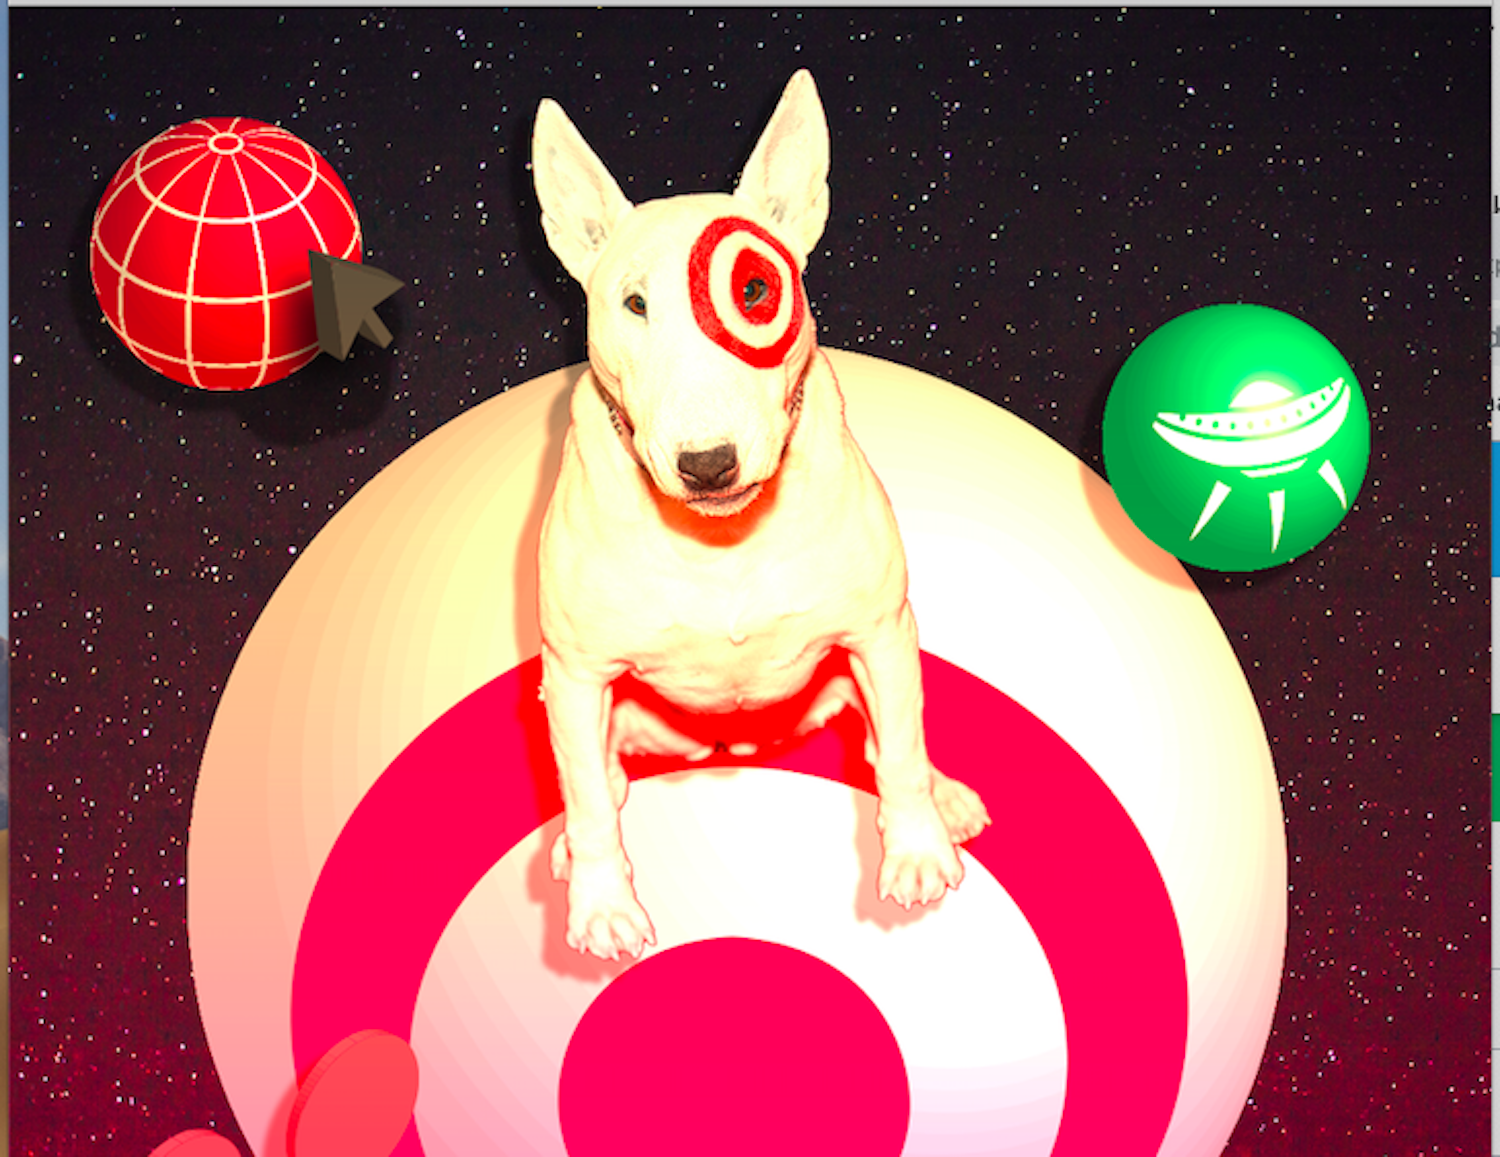 Target is the Yahoo Finance 2019 Company of the Year